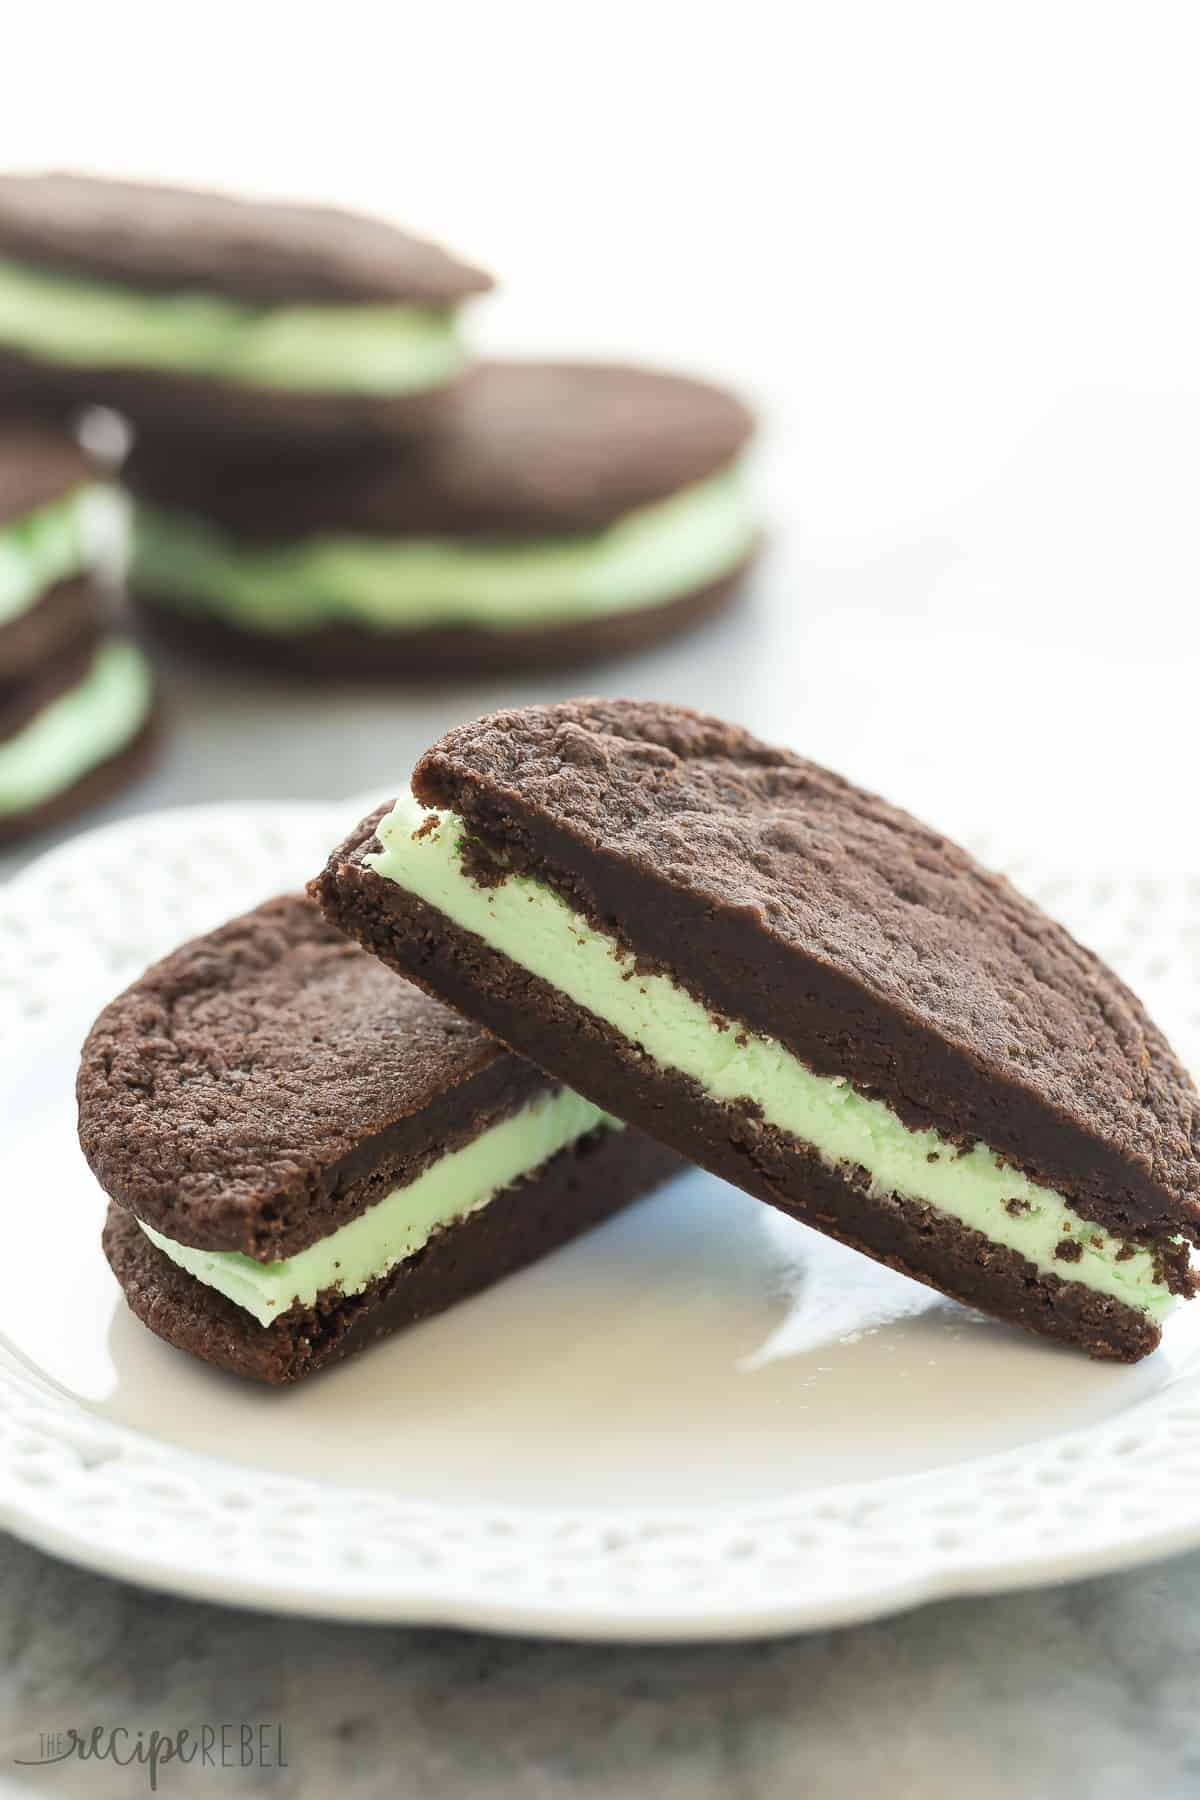 Mint Chocolate Chip Crinkle Cookies